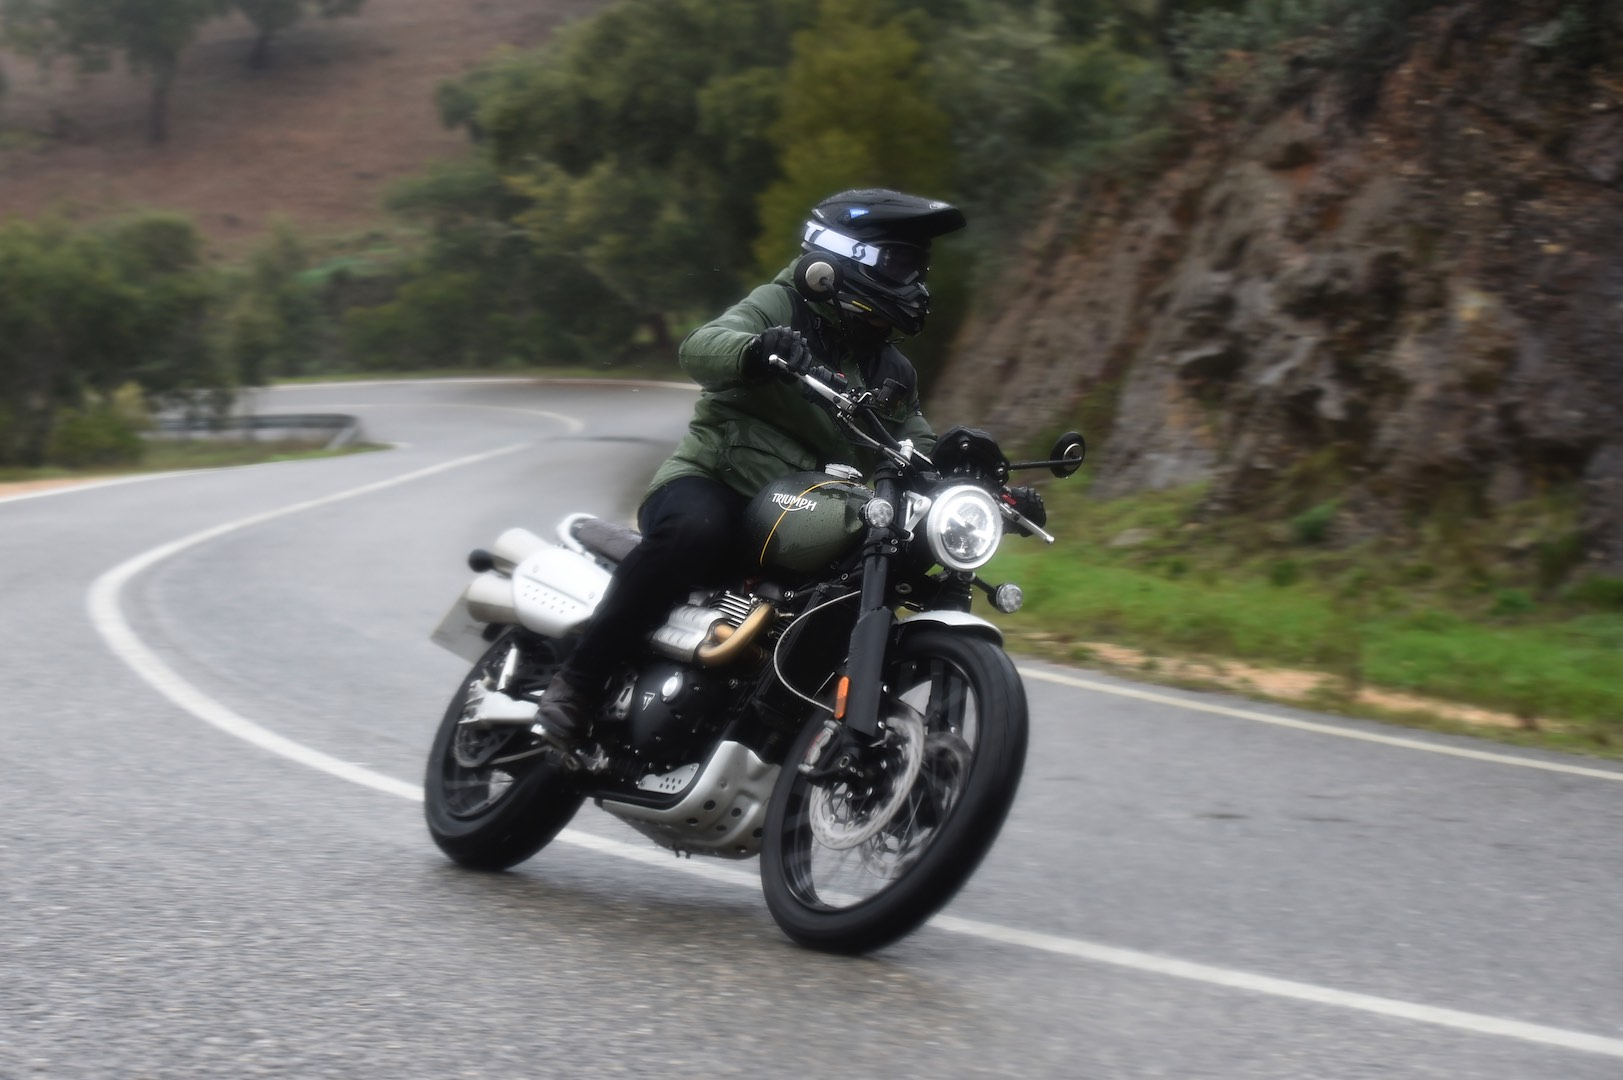 2019 Triumph Scrambler 1200 XC review